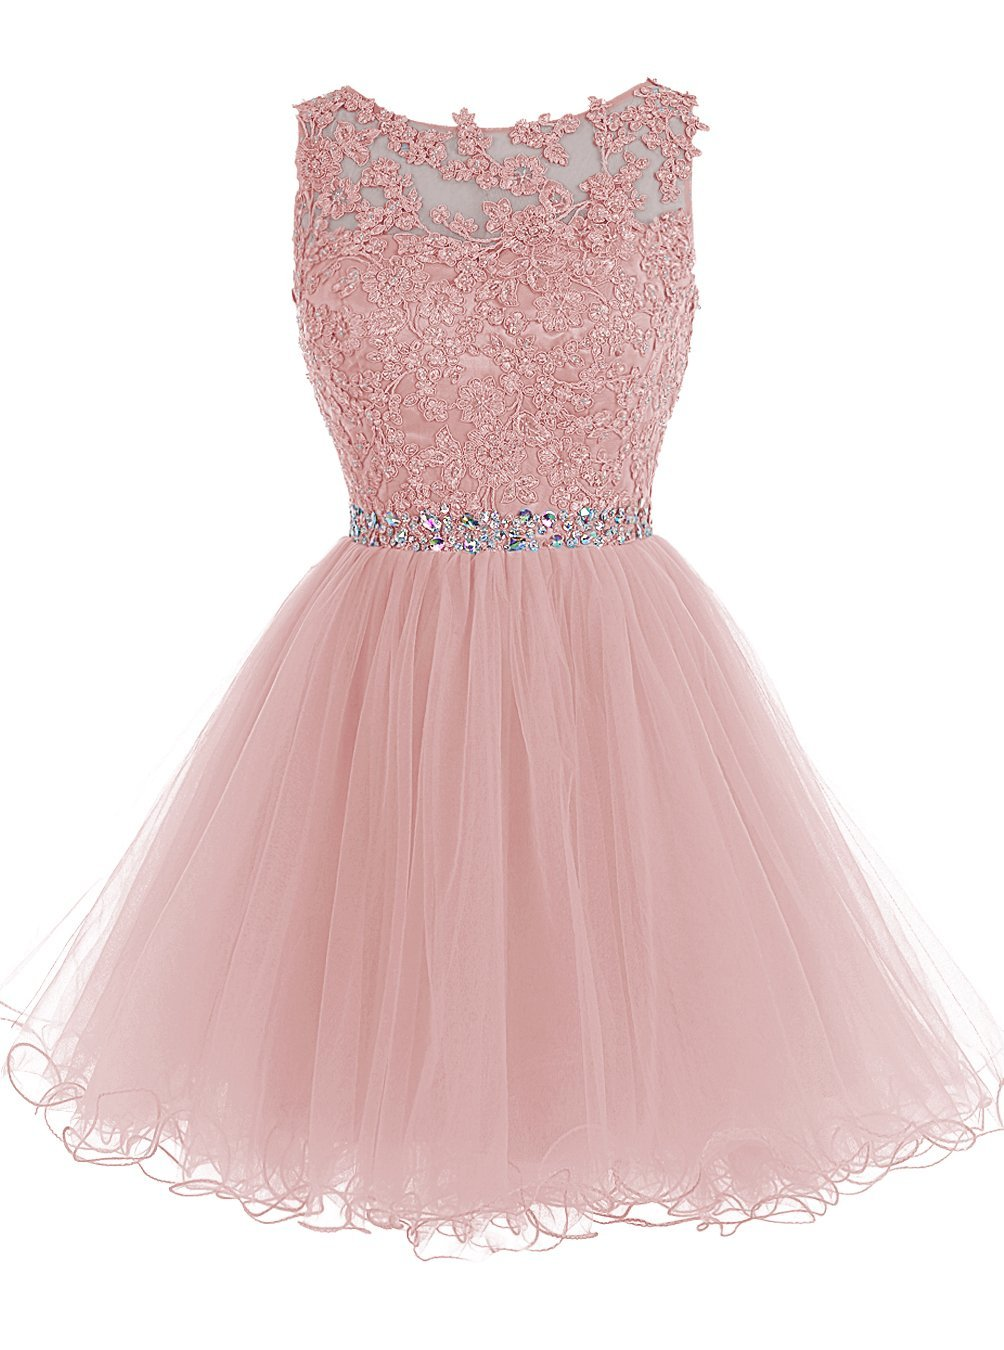 Blush Pink Short Prom Dress, Lace Beaded Prom Dress, Tulle Applique Evening Dress, Party Dress Dance, Pink Homecoming Dress, Beauty Graduation Dress